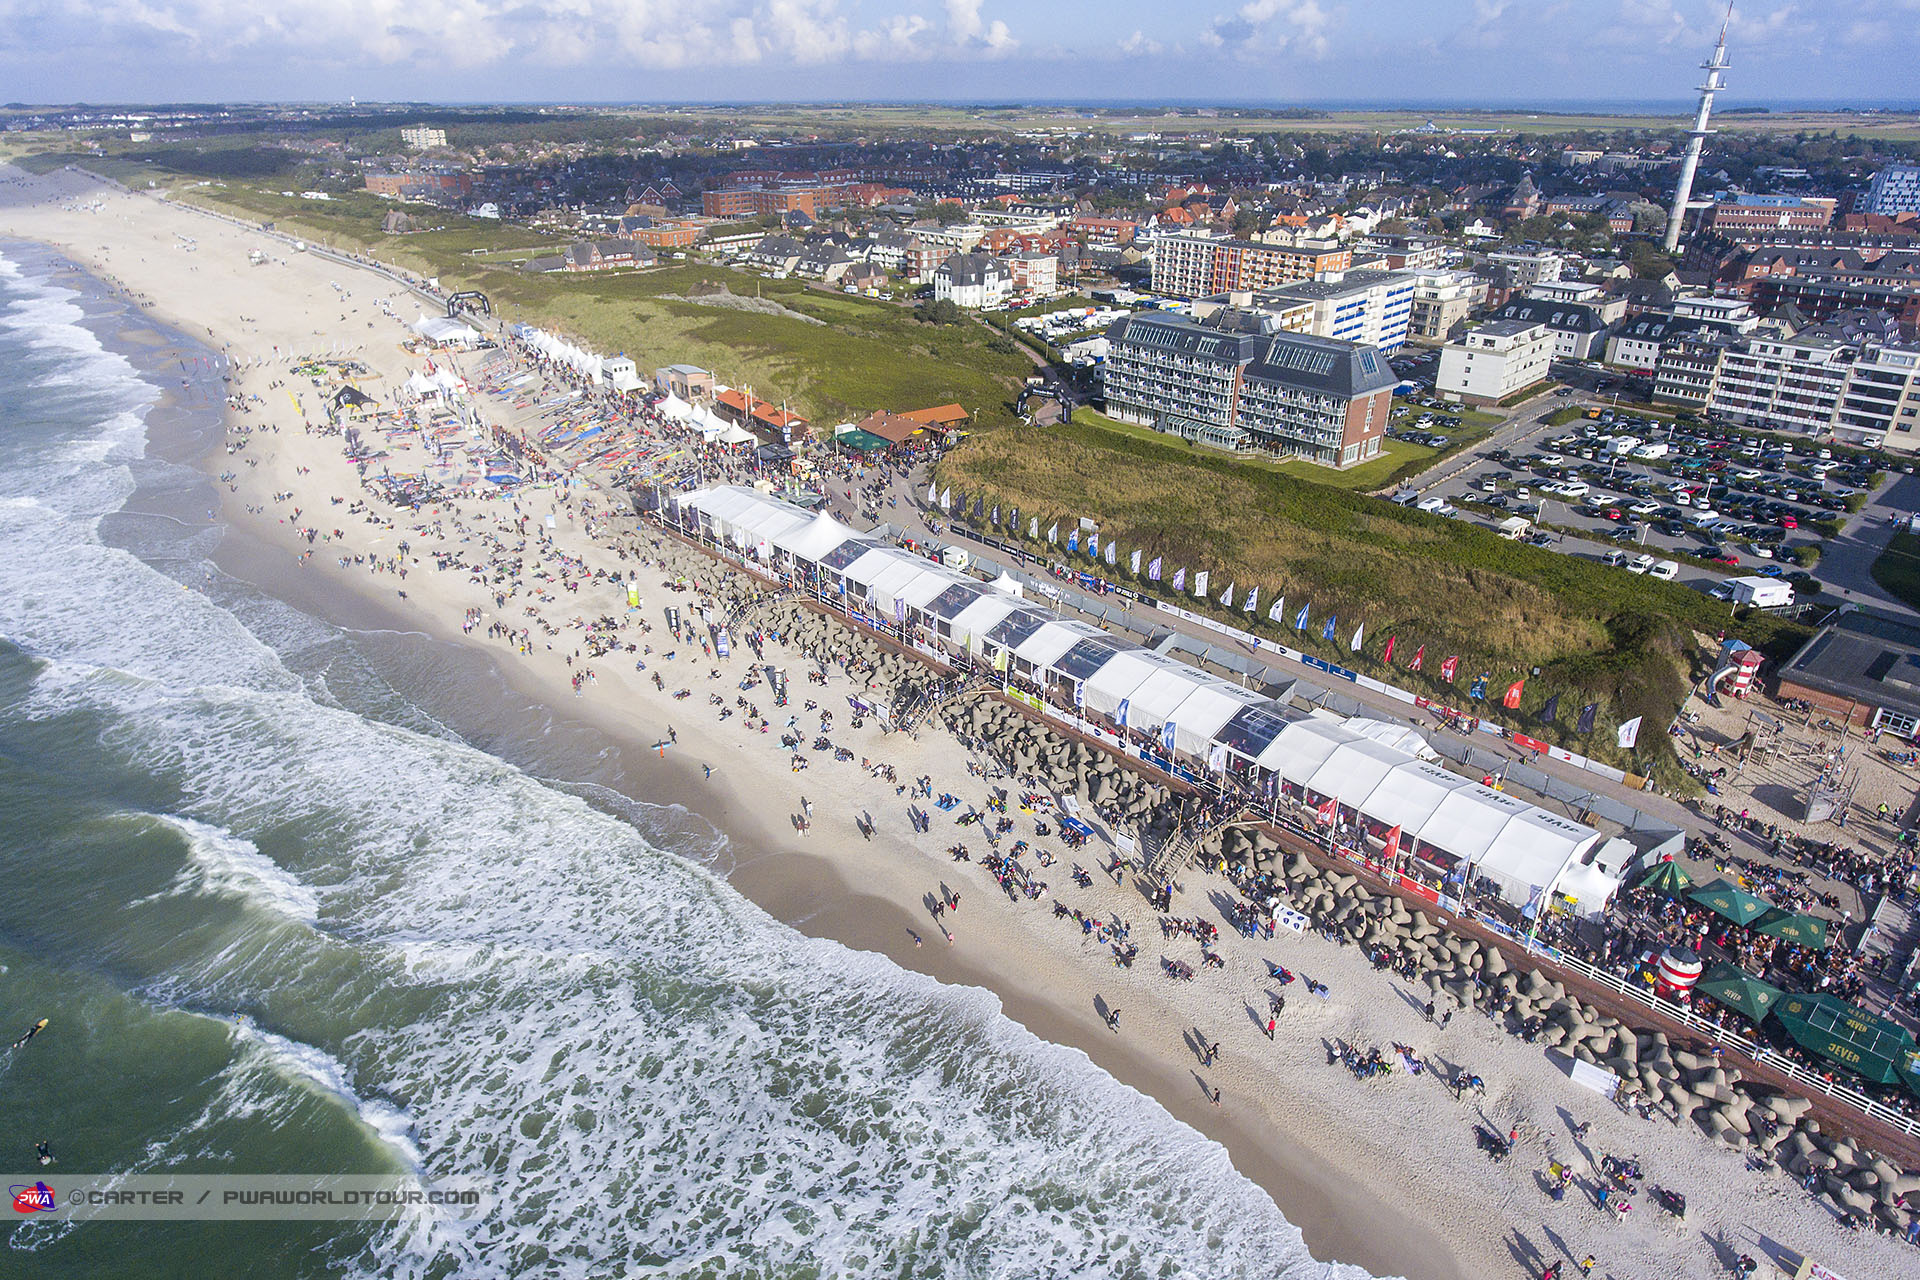 Sylt Windsurf World Cup from above